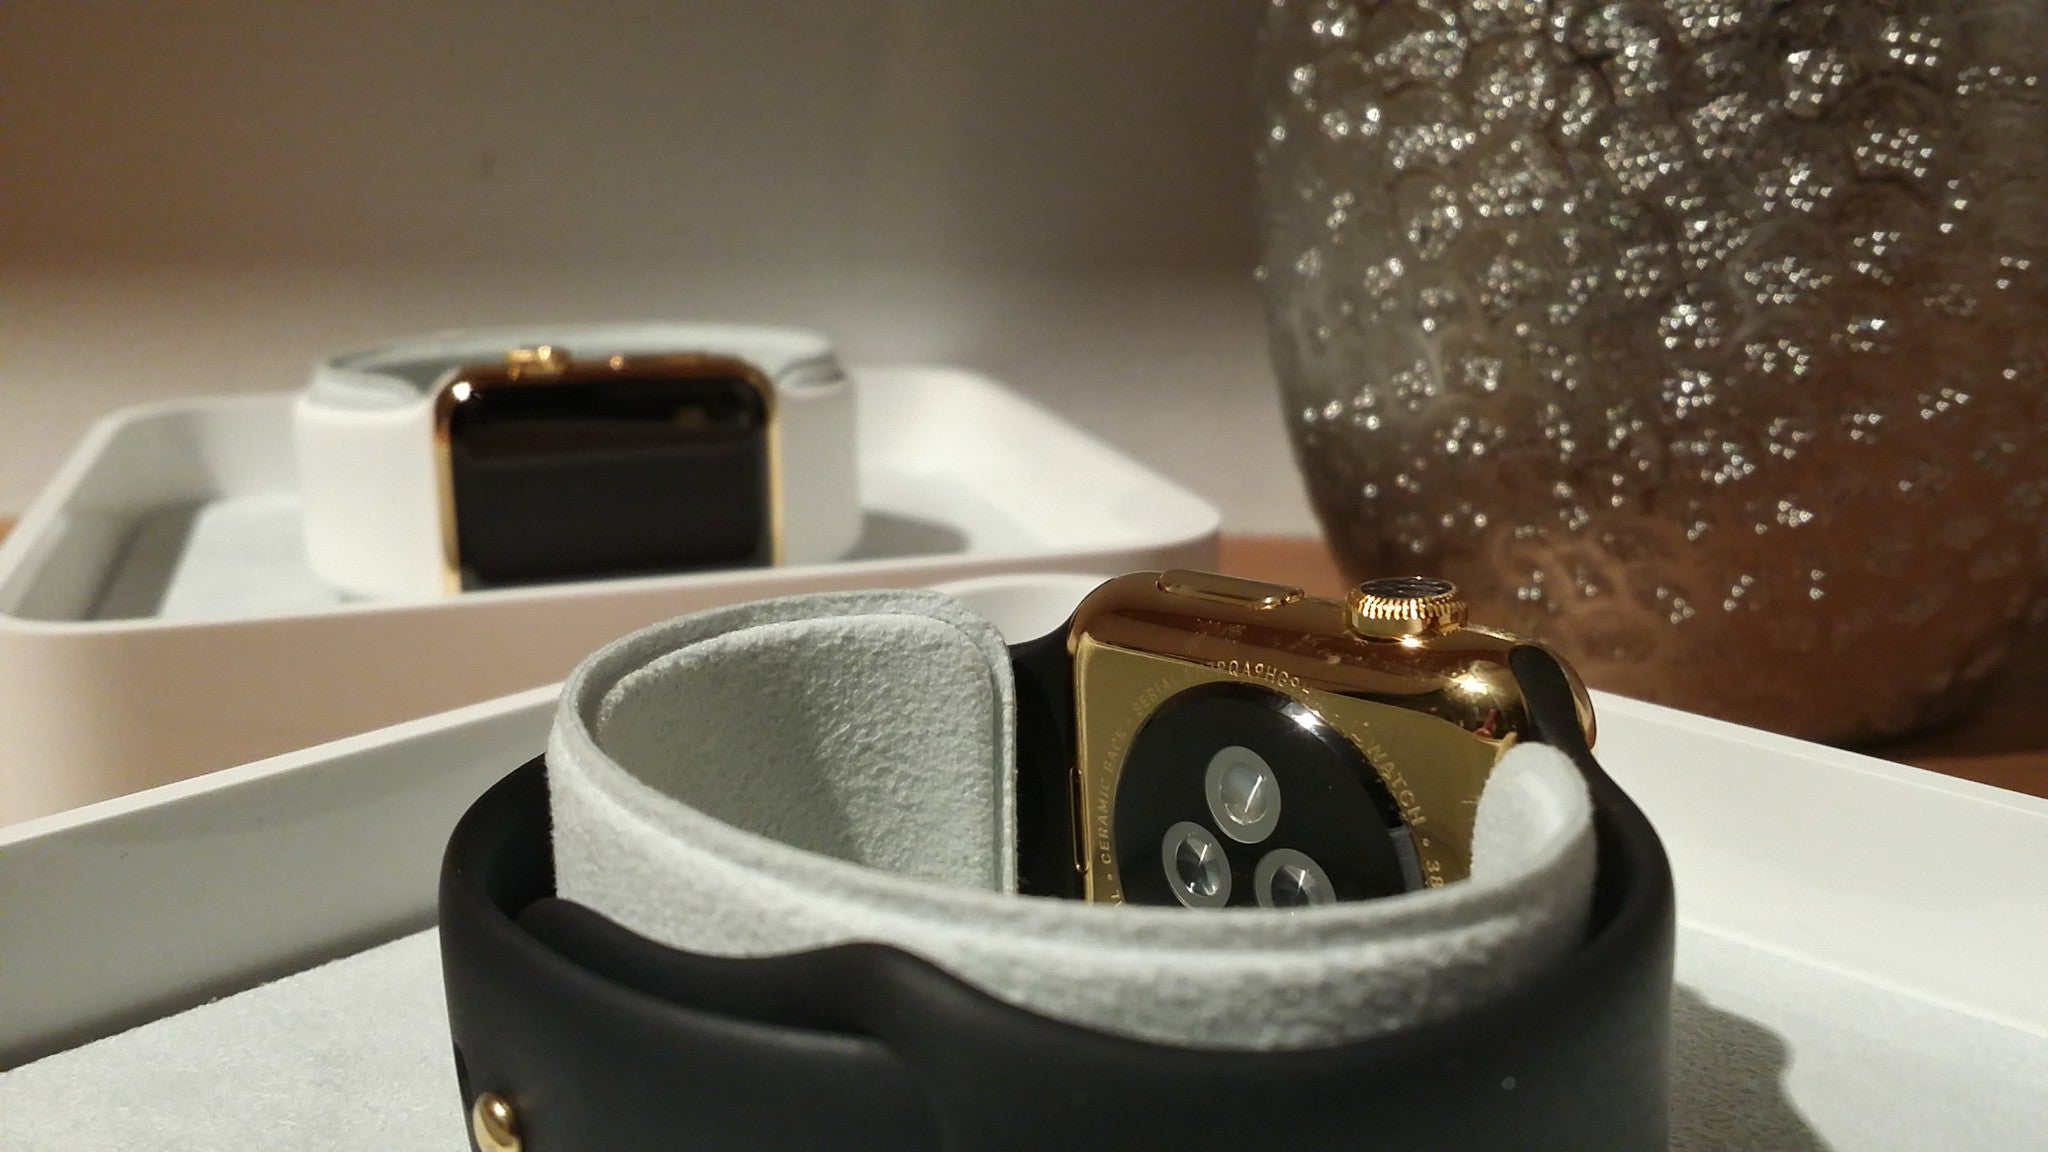 CUSTOM APPLE WATCH GOLD PLATING SERVICES